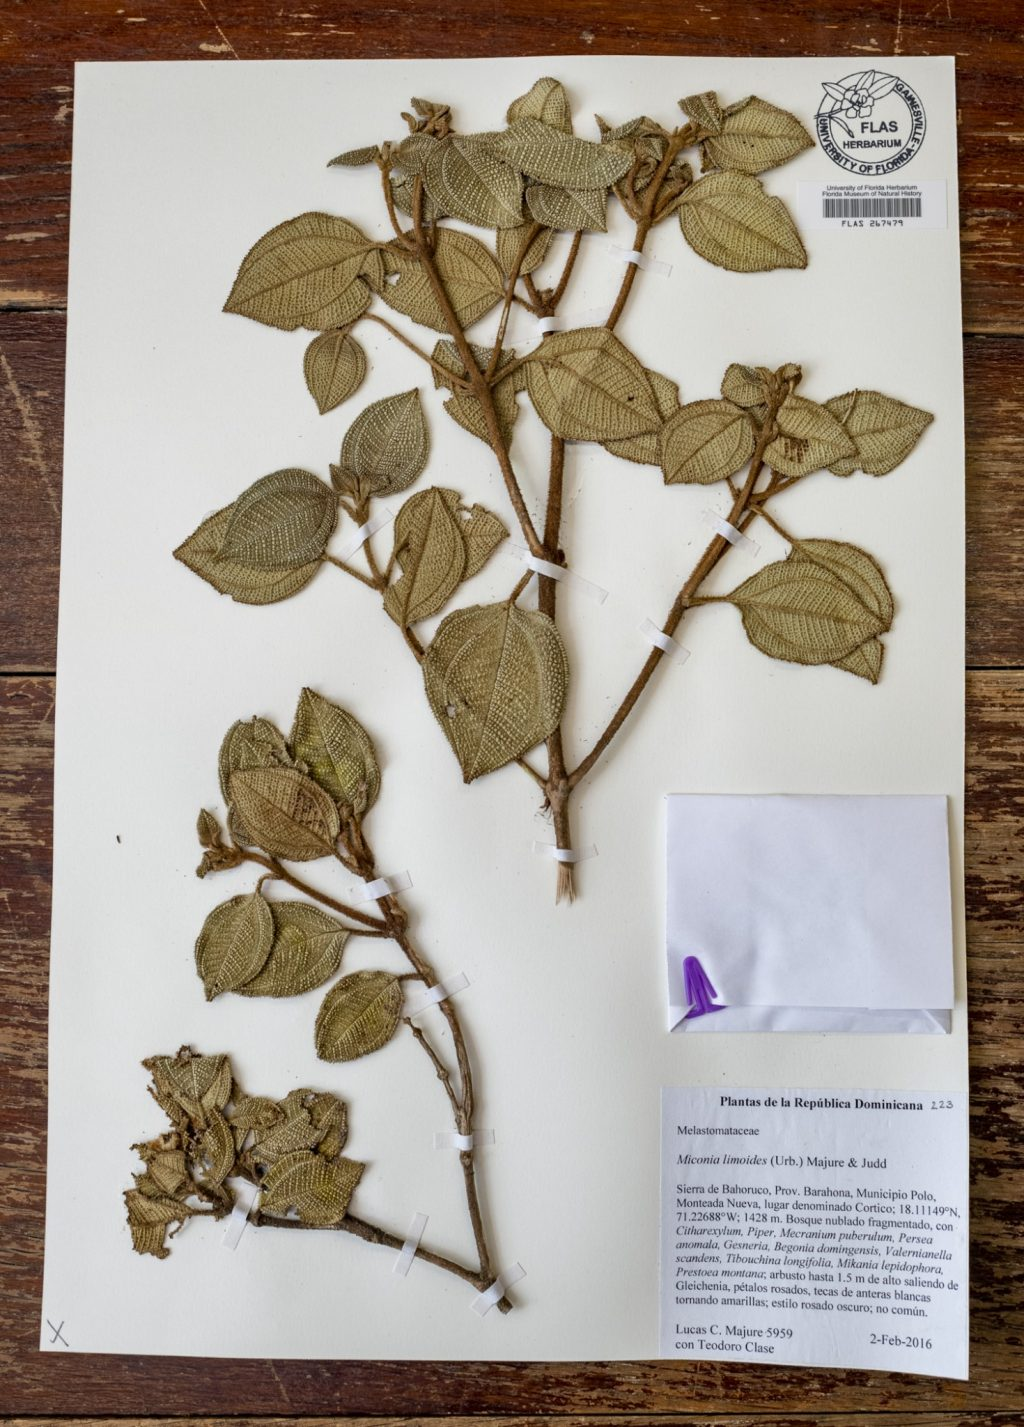 FLAS specimen with textured leaves.